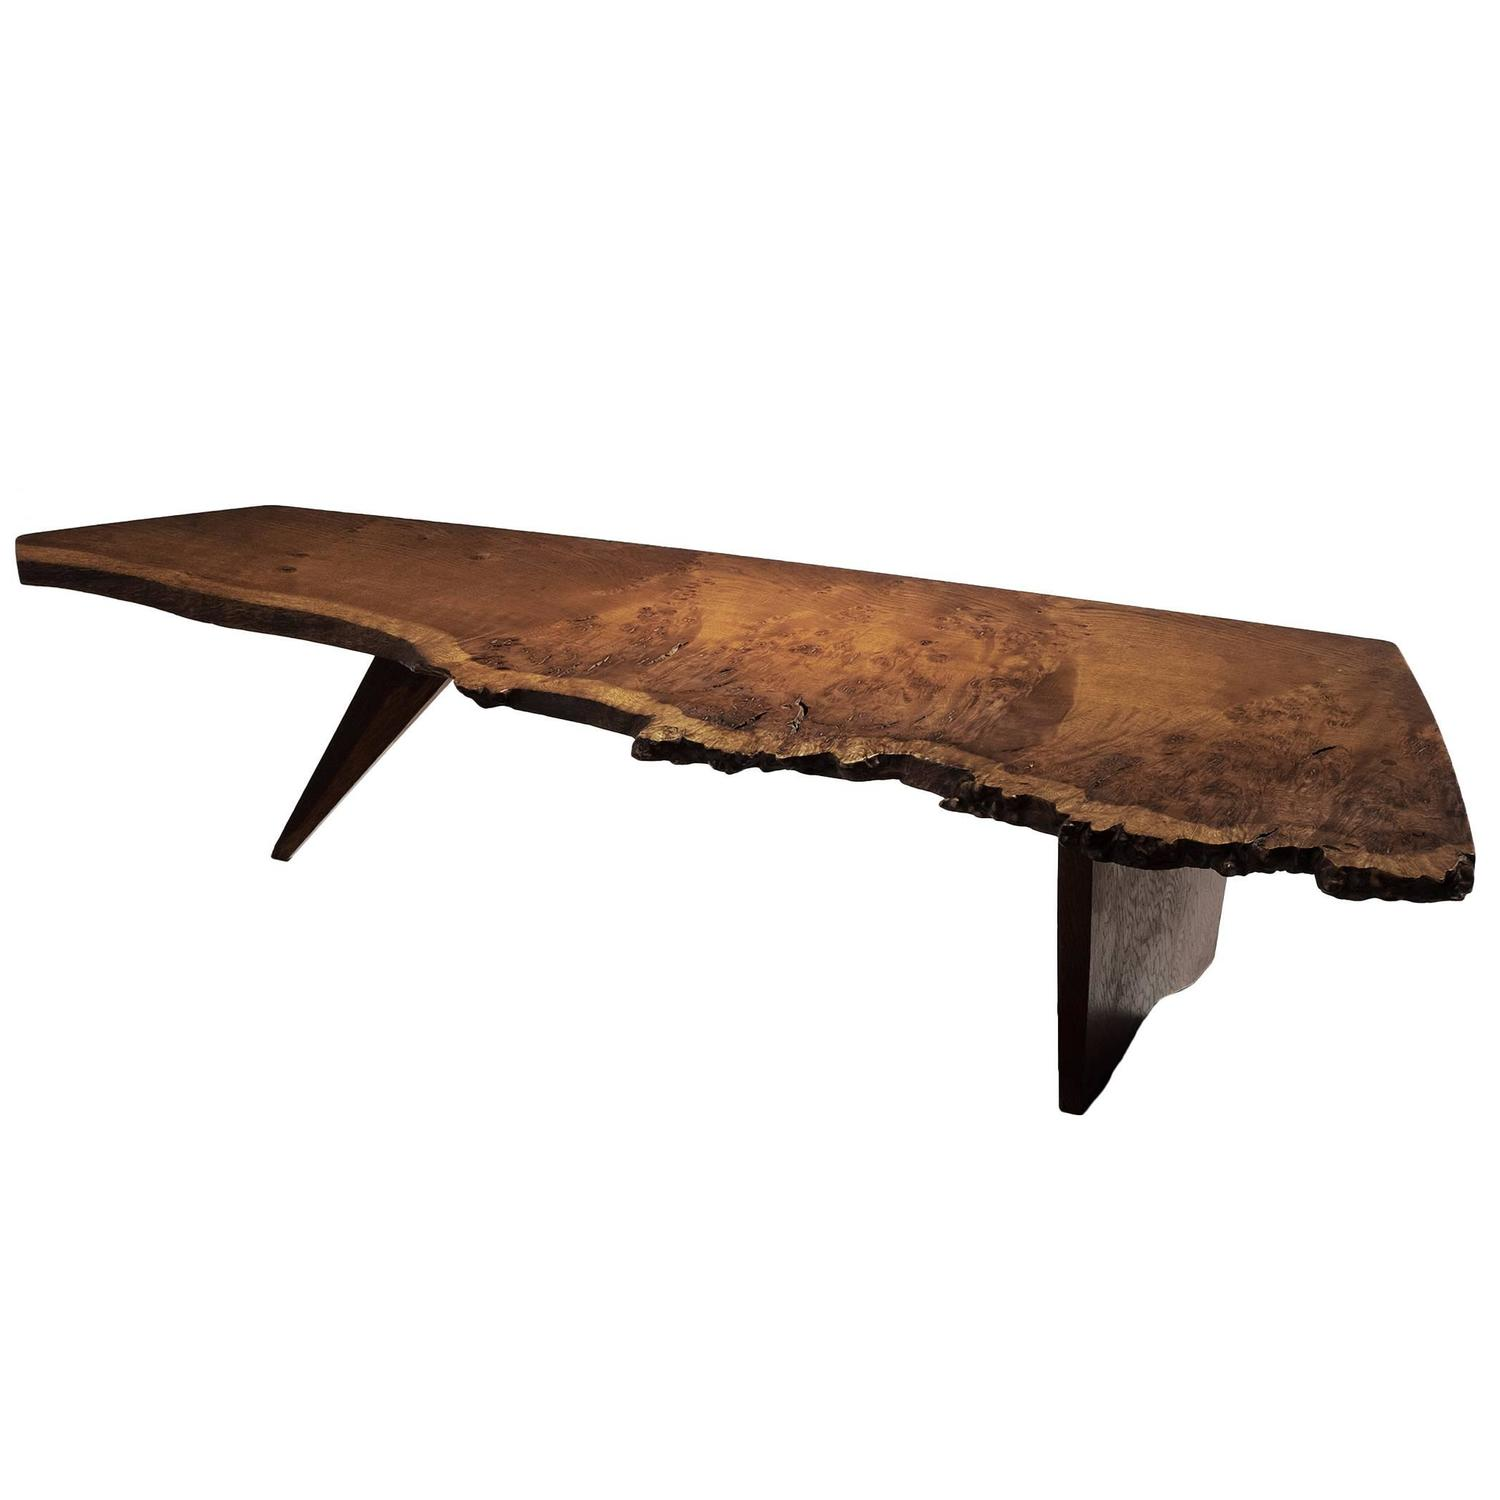 George nakashima slab coffee table in oak burlwood for for Oak slab coffee table